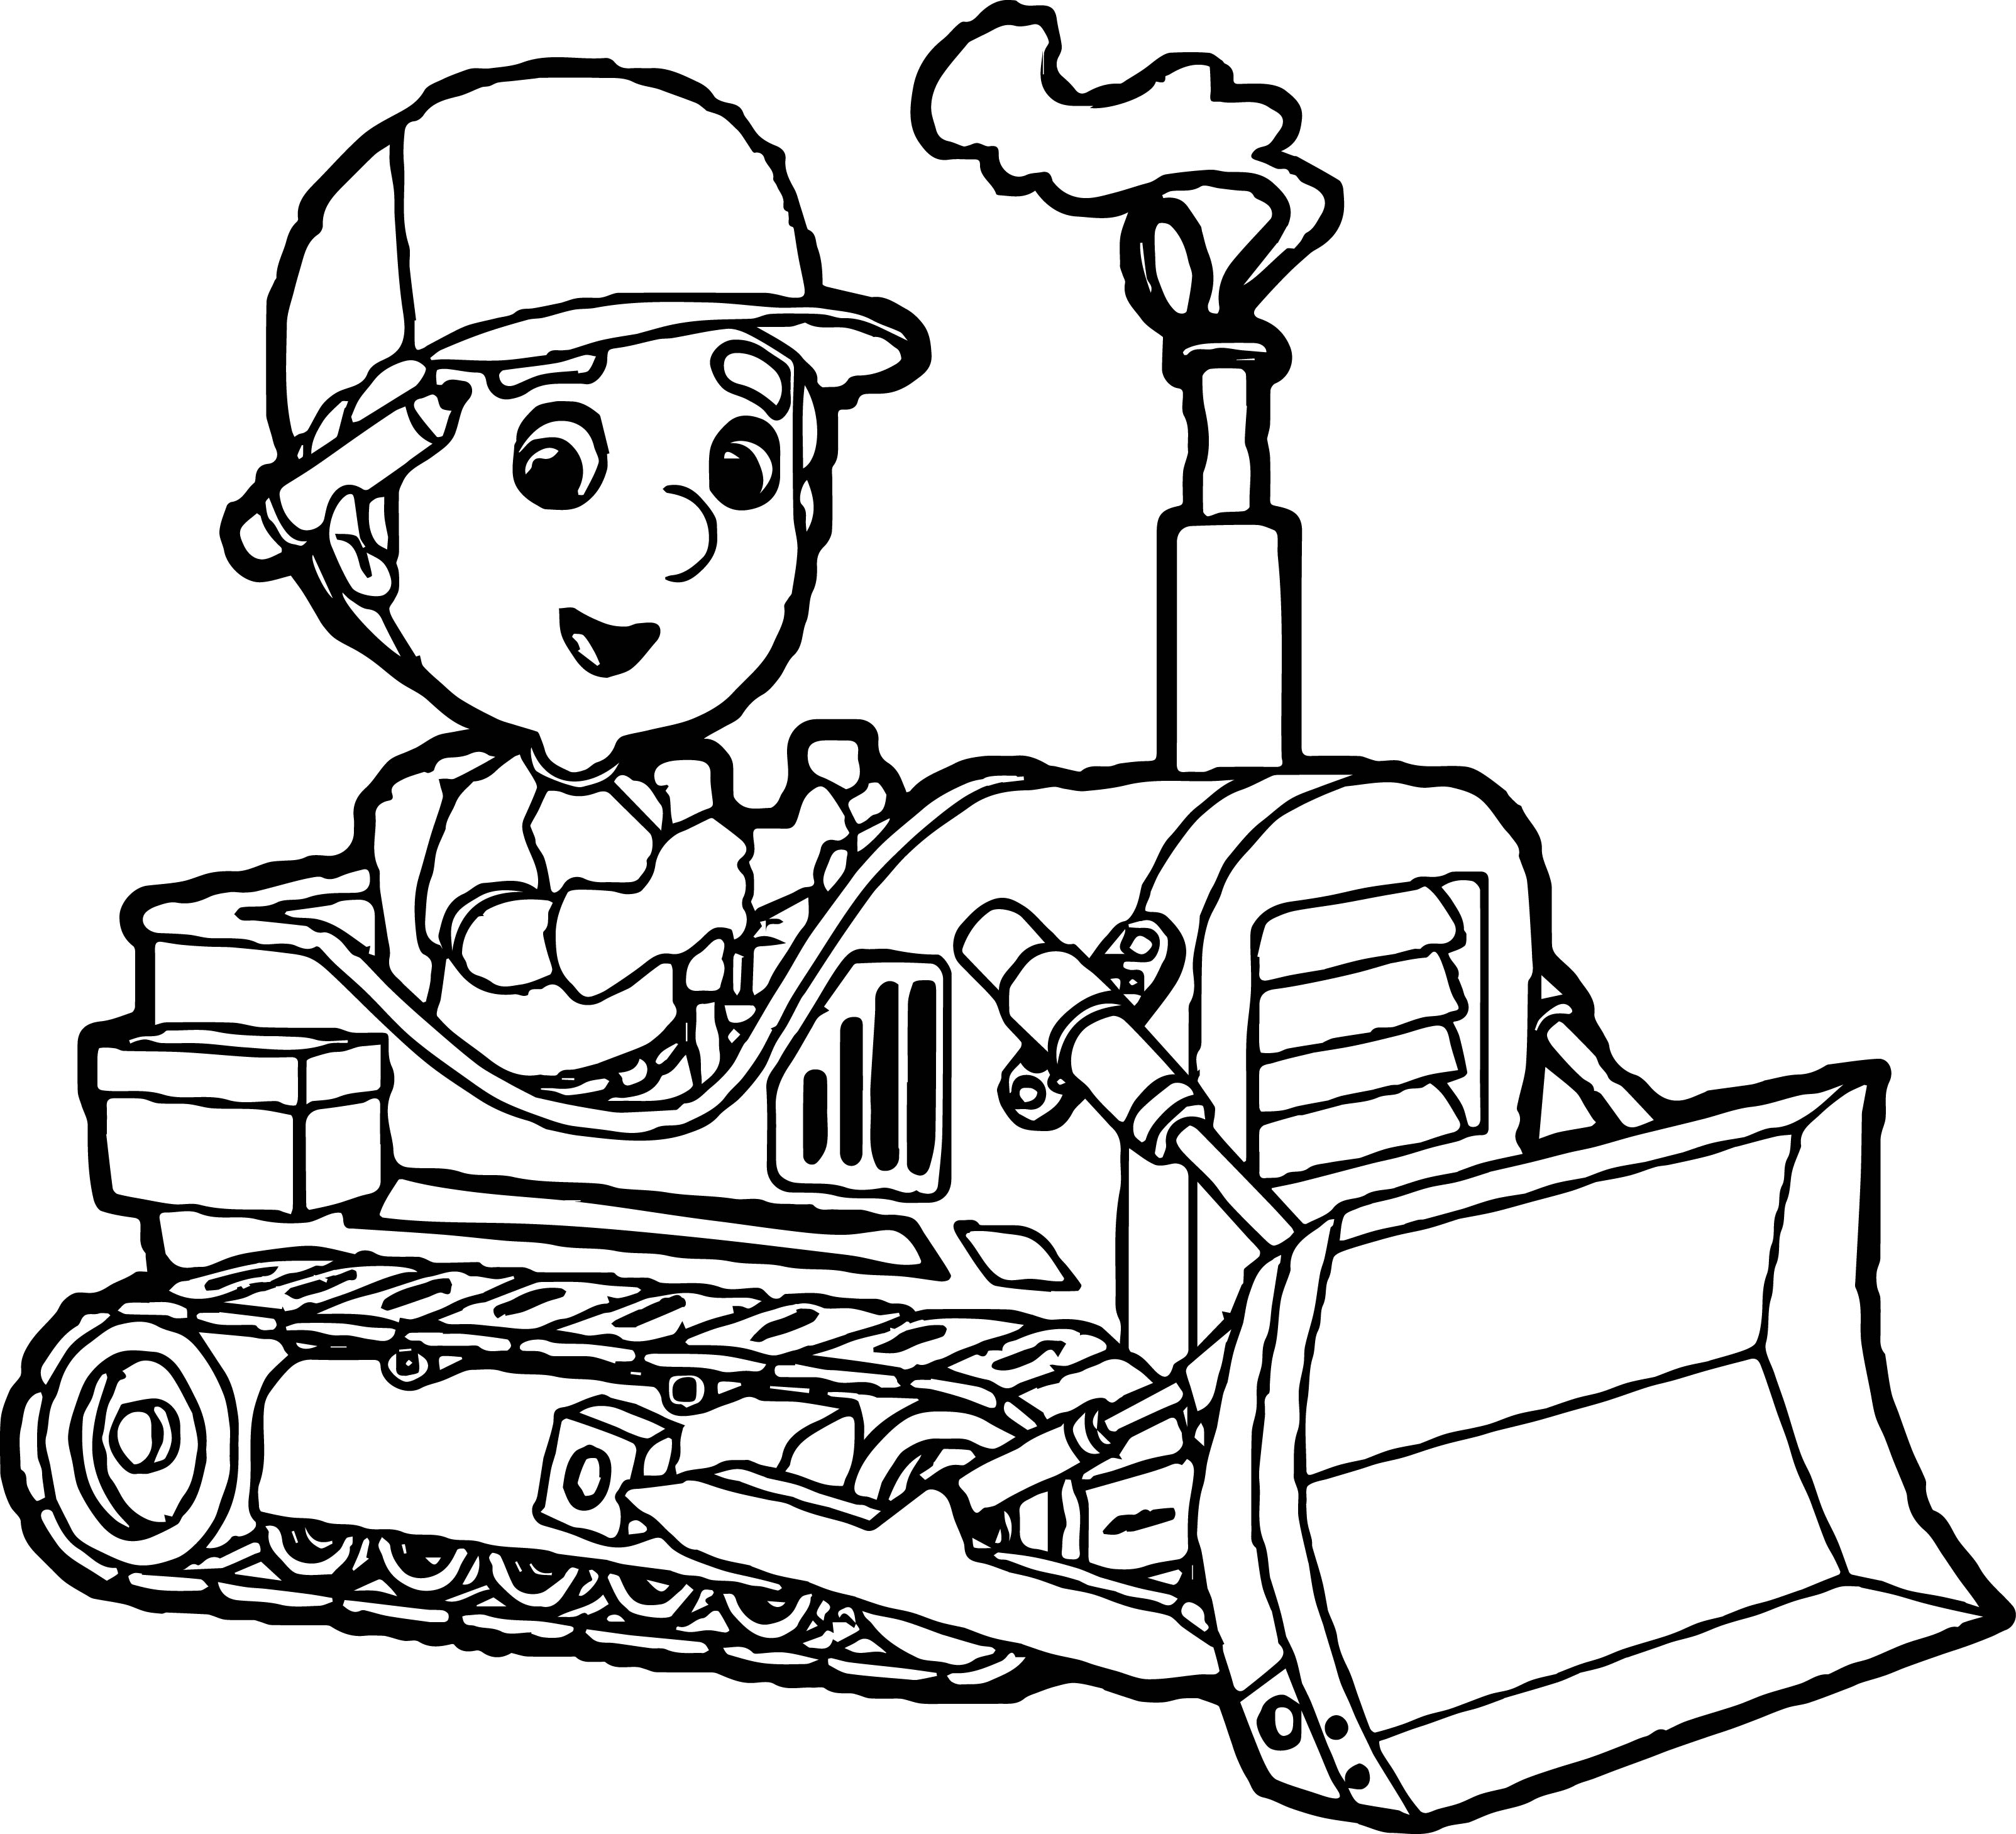 bull dozer coloring pages - photo#22